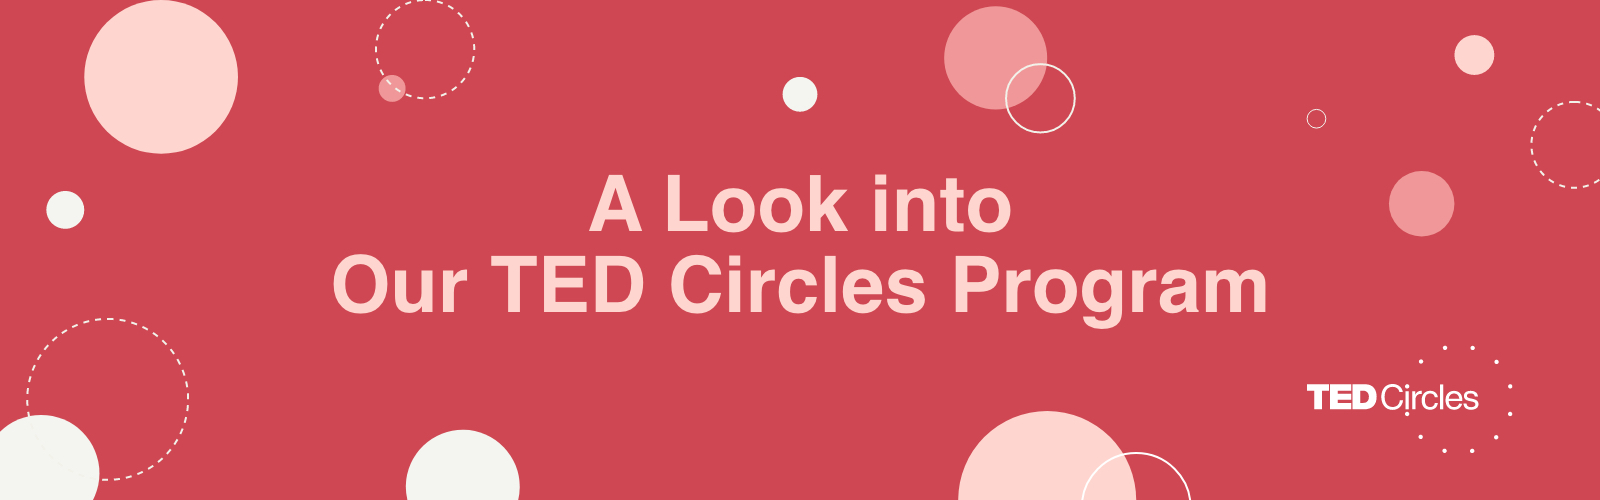 A Look into Our TED Circles Program